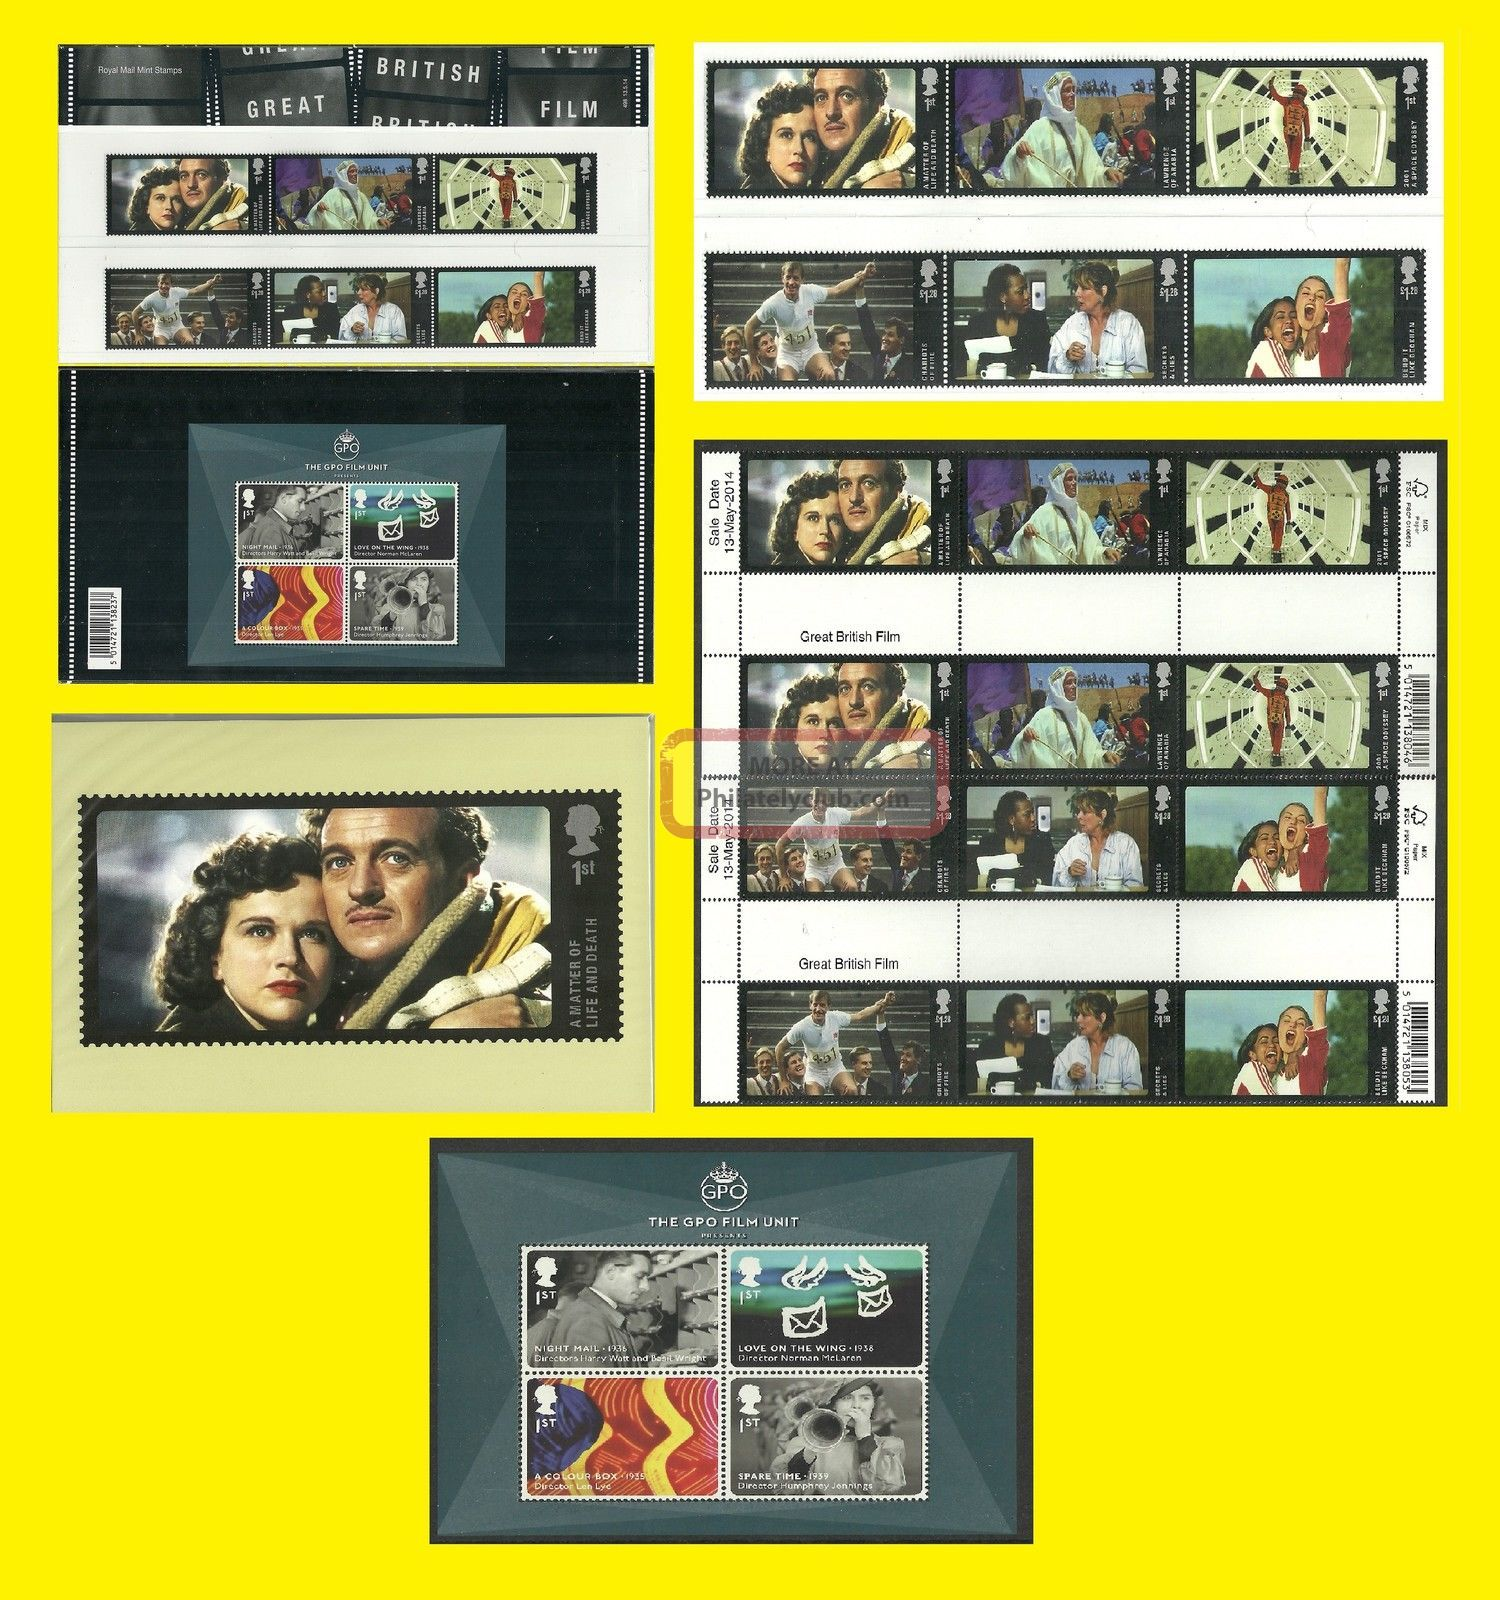 2014 Great British Film All Royal Mail Varieties Issued Each Seperately Topical Stamps photo